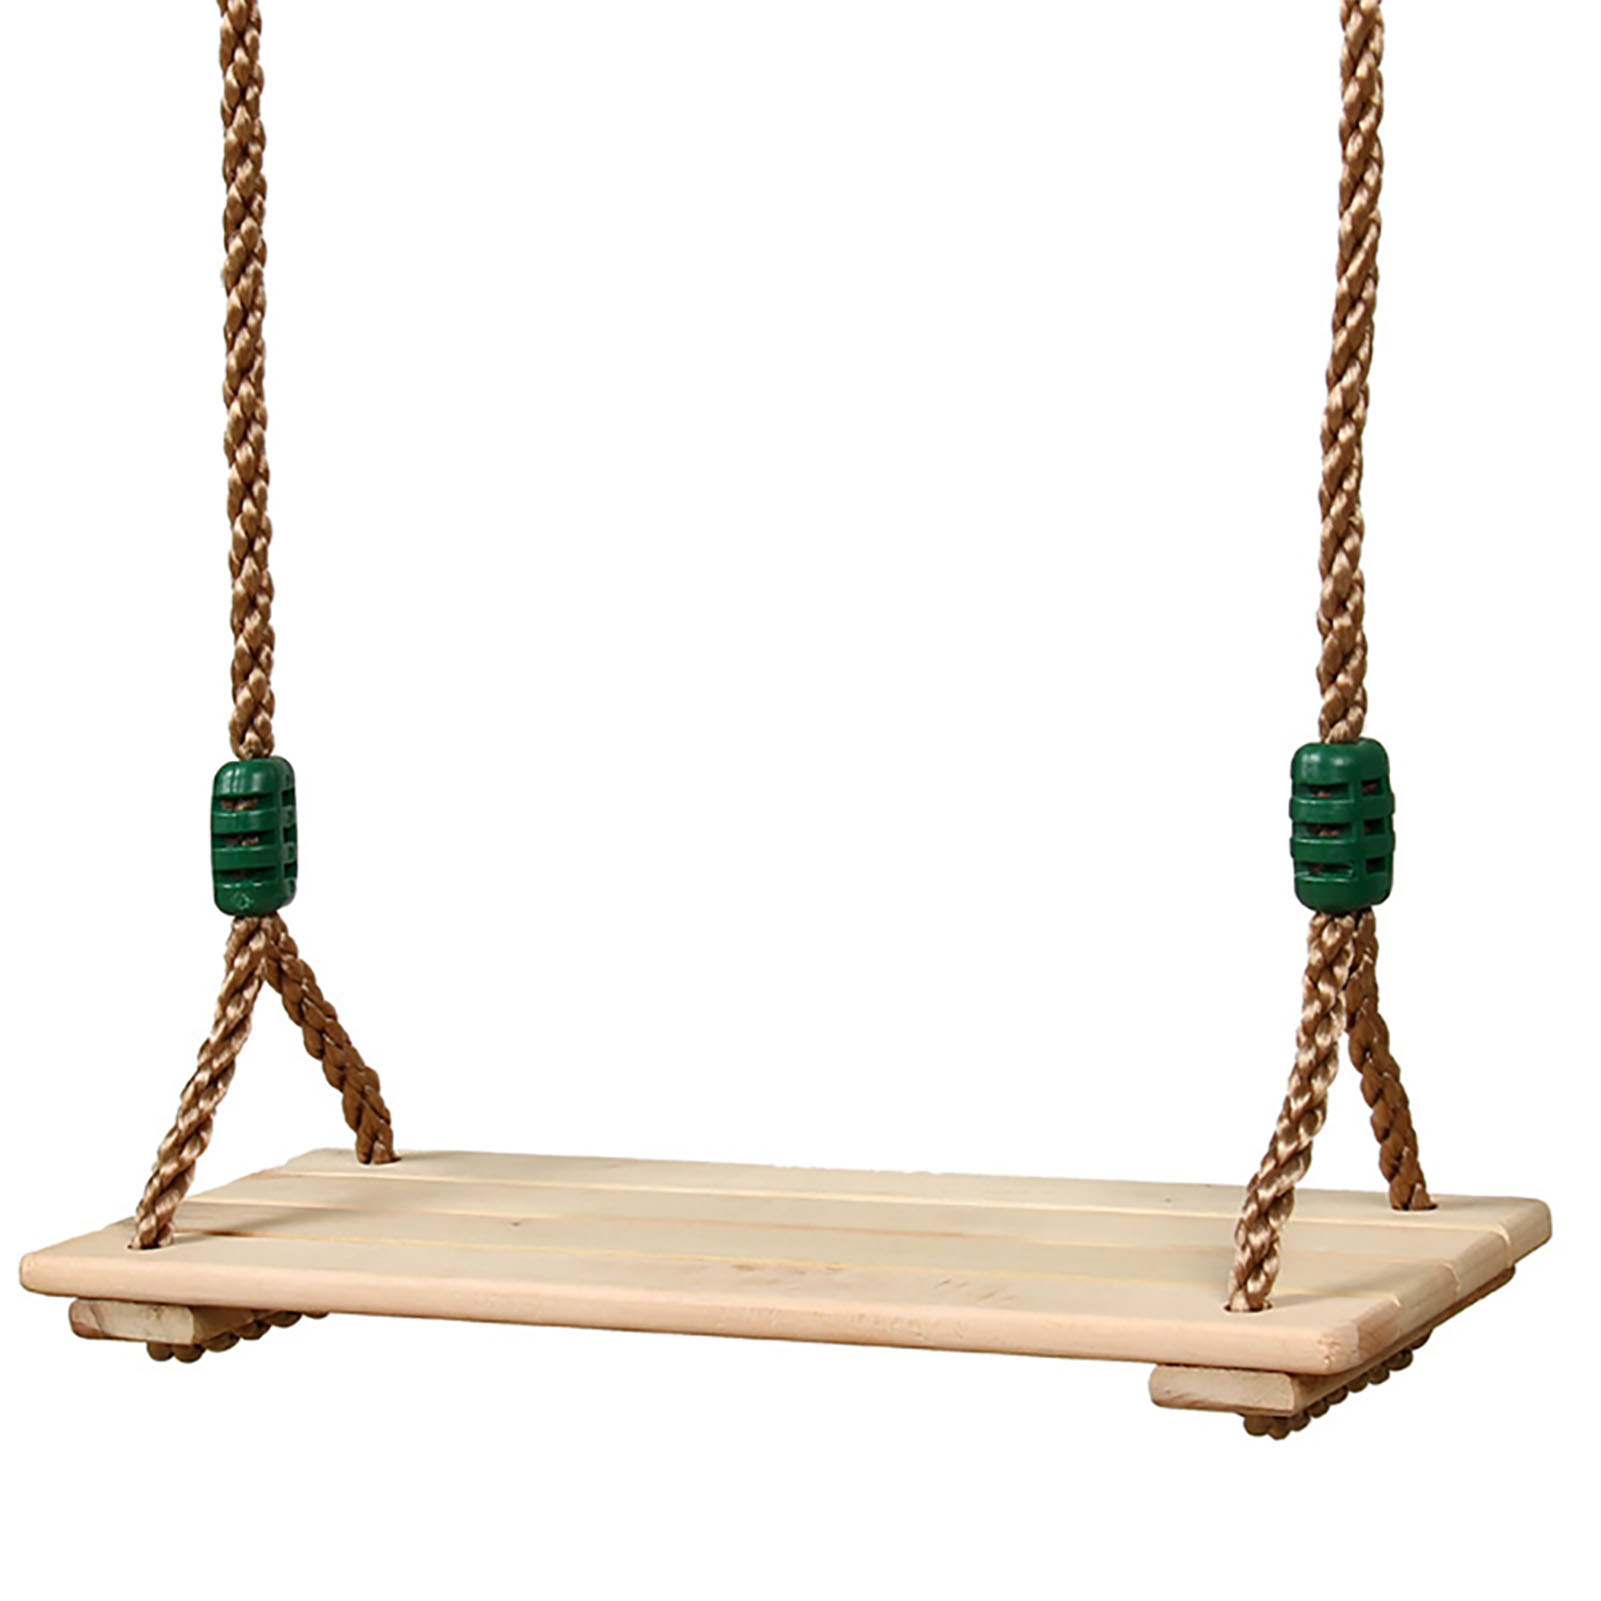 Adult And Children Swing High-quality Polished Four-board Anti-corrosive Wood Outdoor Indoor Swing Rural Style Wooden Swing